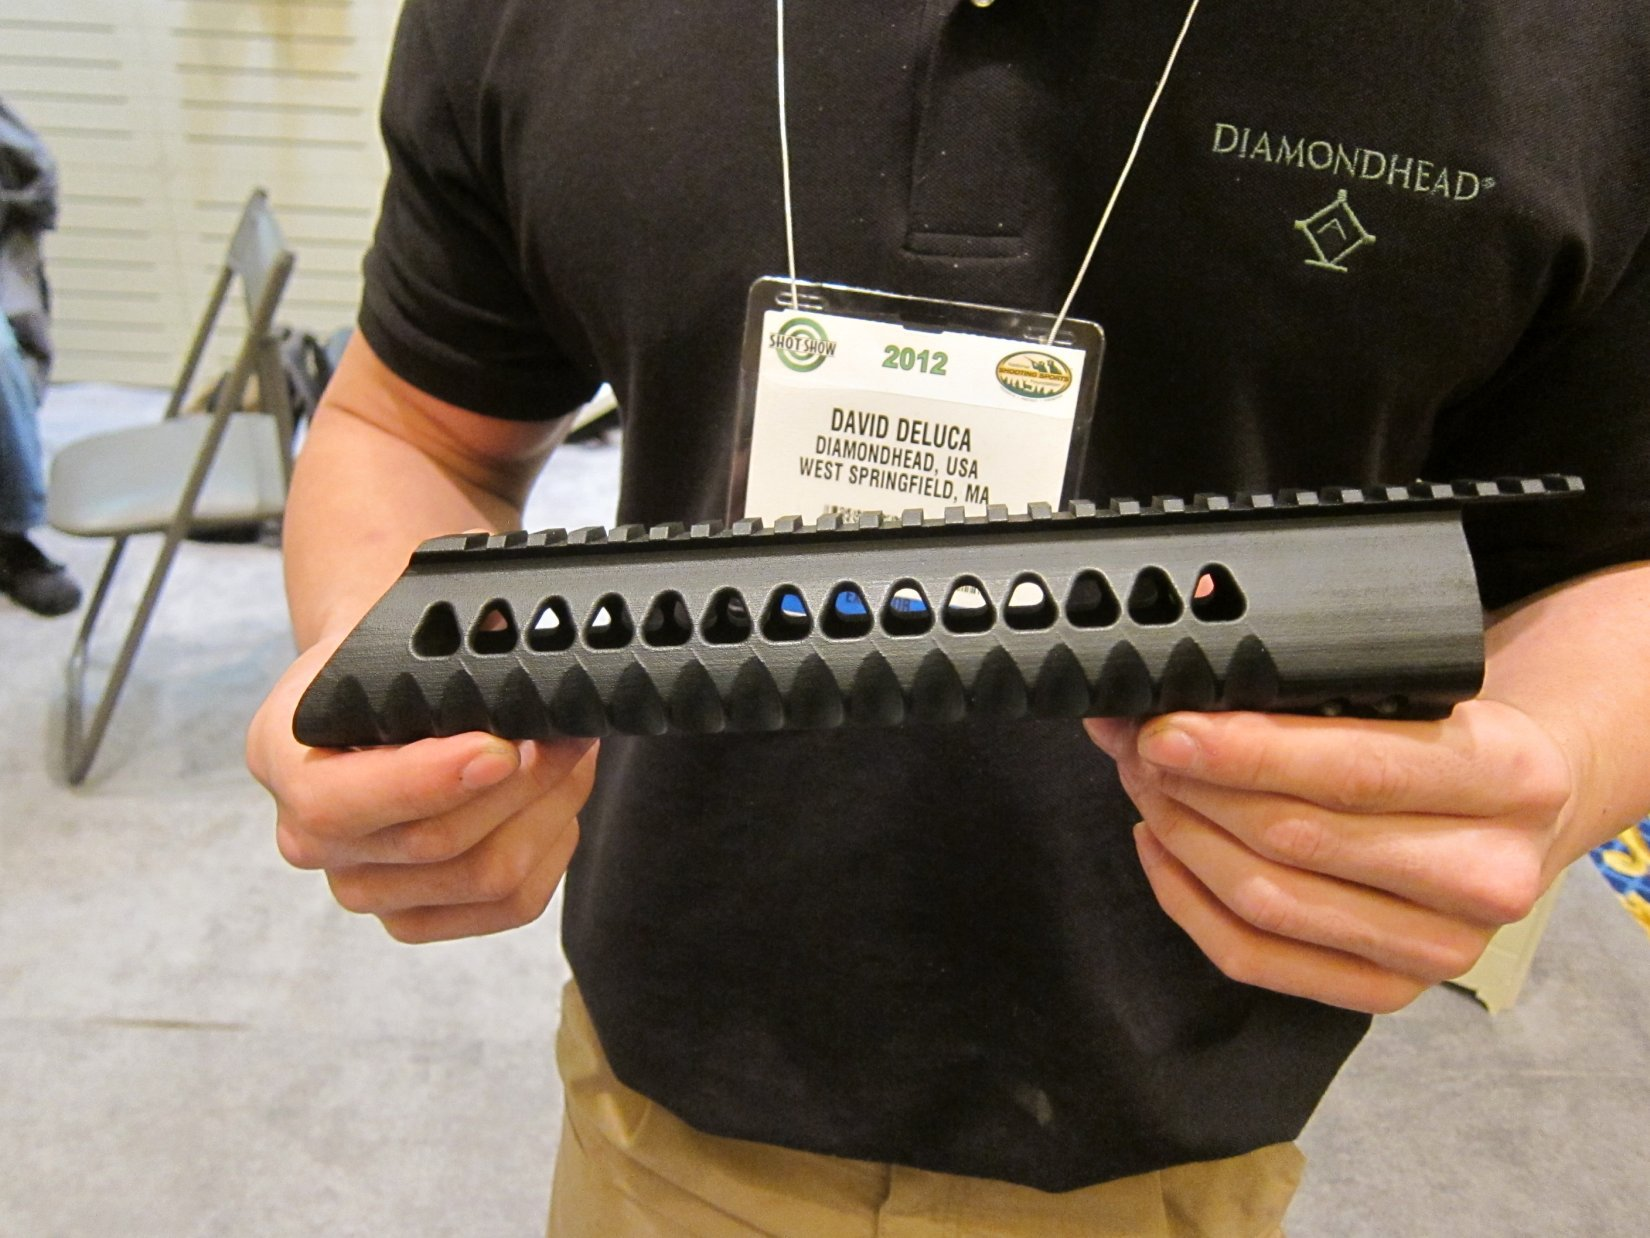 Diamondhead USA V RS T TD Versa Rail System Lightweight Free Float Triangular Modular Rail Tactical Handguard SHOT Show 2012 DefenseReview.com DR 5 Diamondhead USA V RS T/TD Versa Rail System Lightweight Free Float Triangular Tactical Handguard/Modular Rail System for Tactical AR 15 Carbine/SBRs at SHOT Show 2012 (Video!)